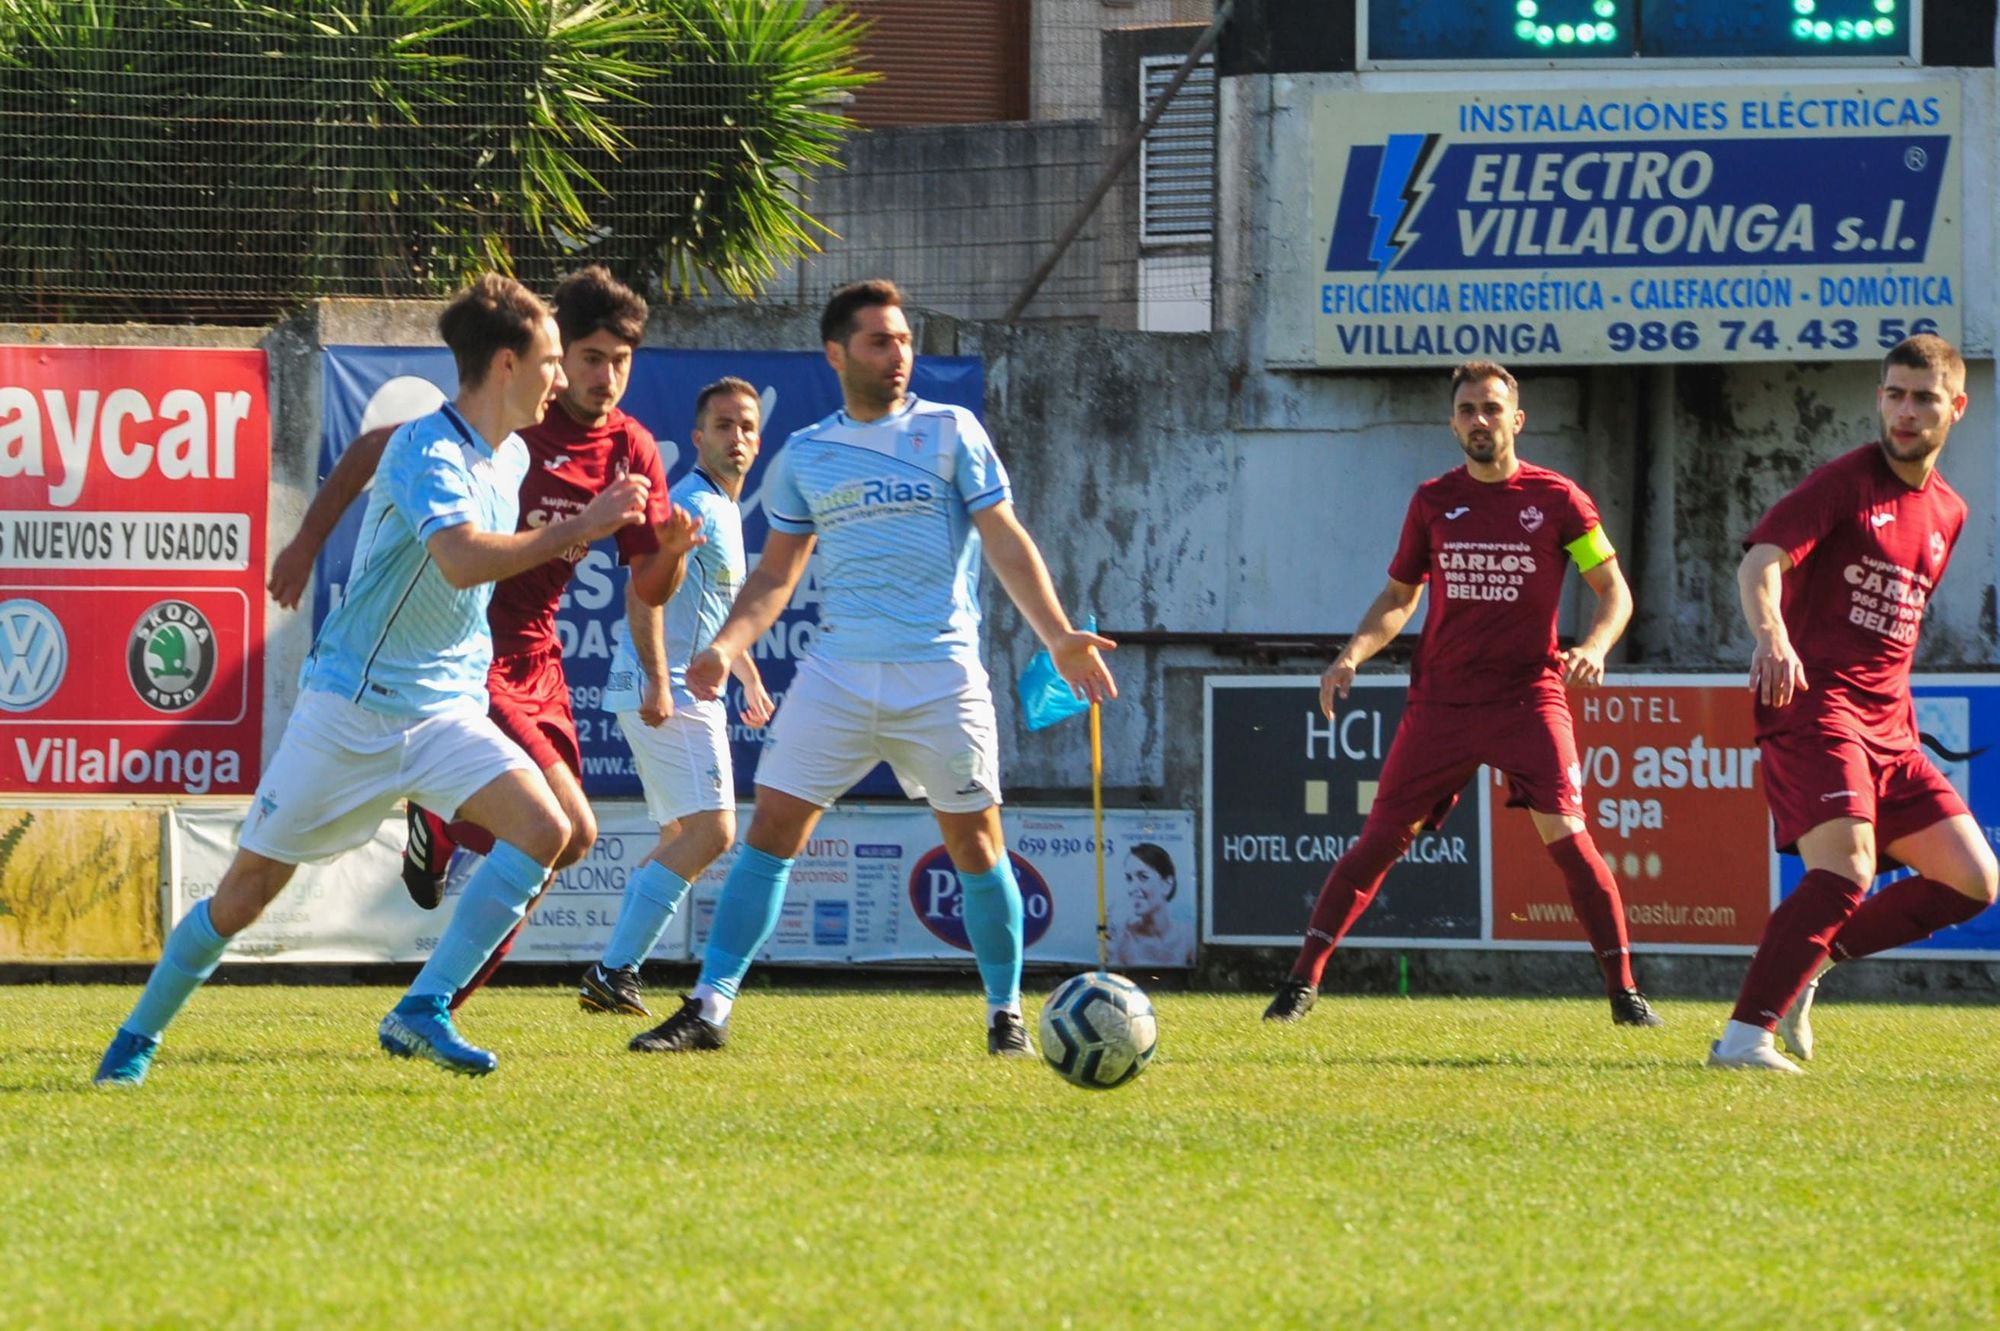 Villalonga Vs Beluso